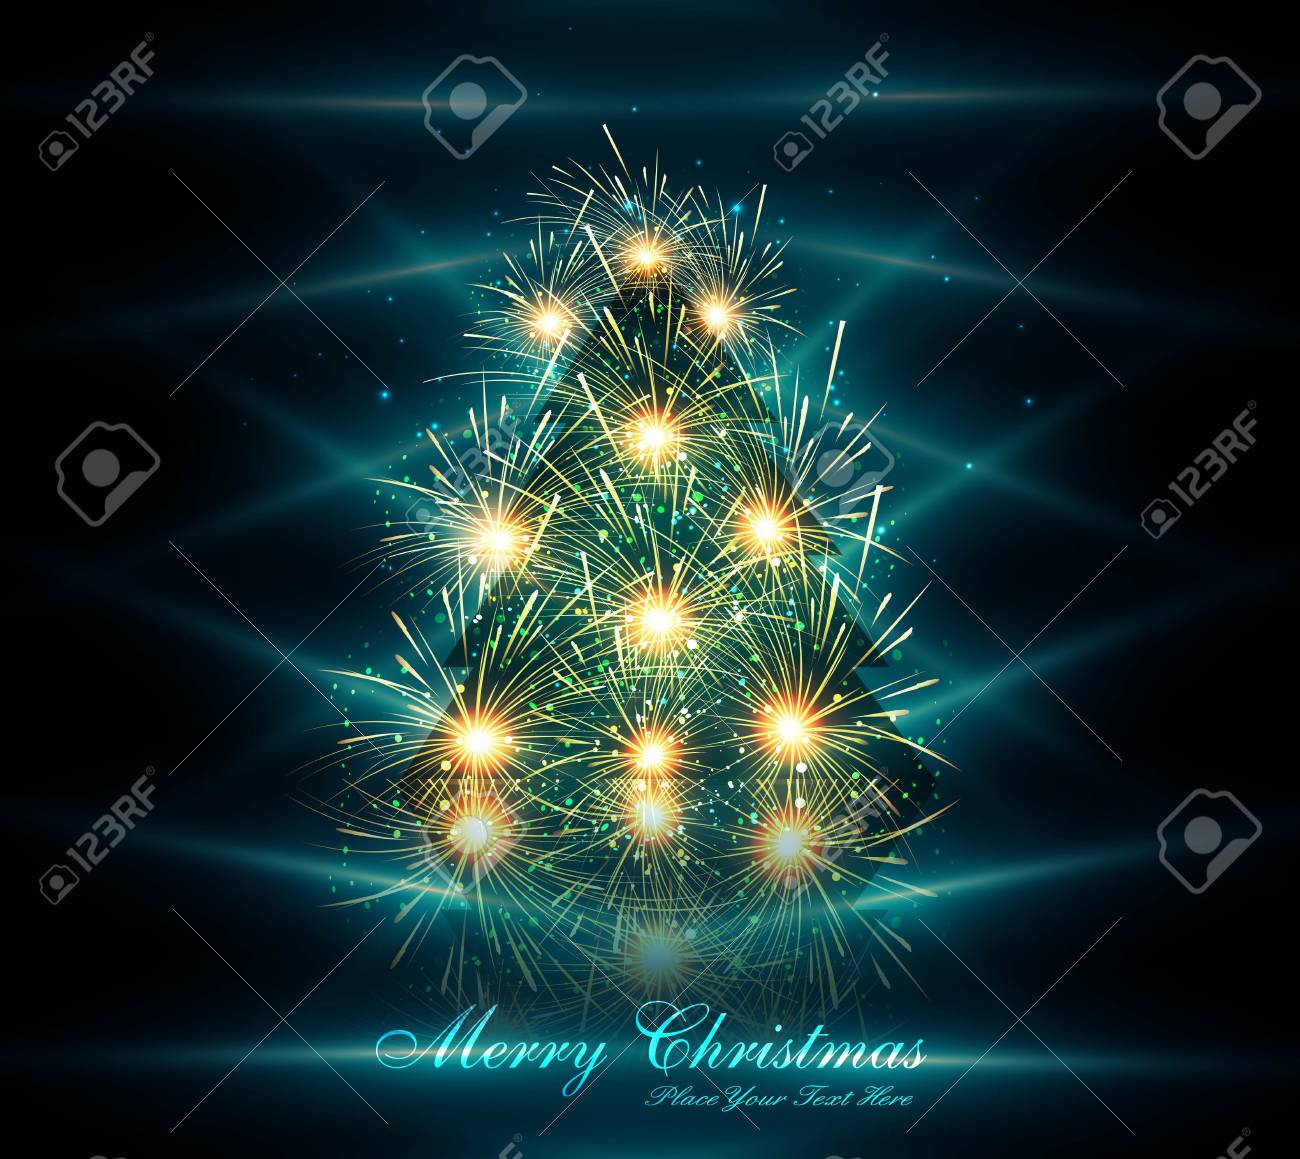 merry christmas tree reflection celebration colorful card background Stock Vector - 18026016